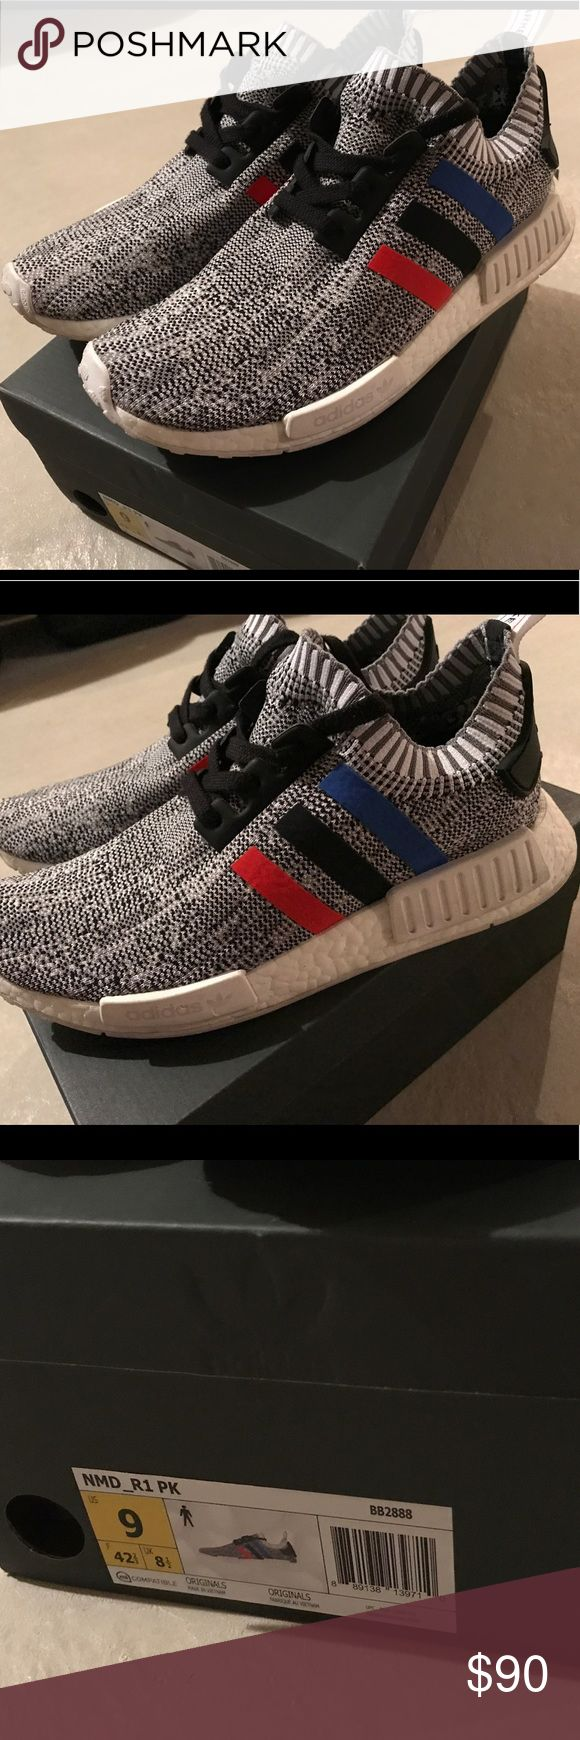 Adidas NMD R1 primeknit Great condition, trim color NMD r1. Primeknit. Size 9 adidas Shoes Sneakers